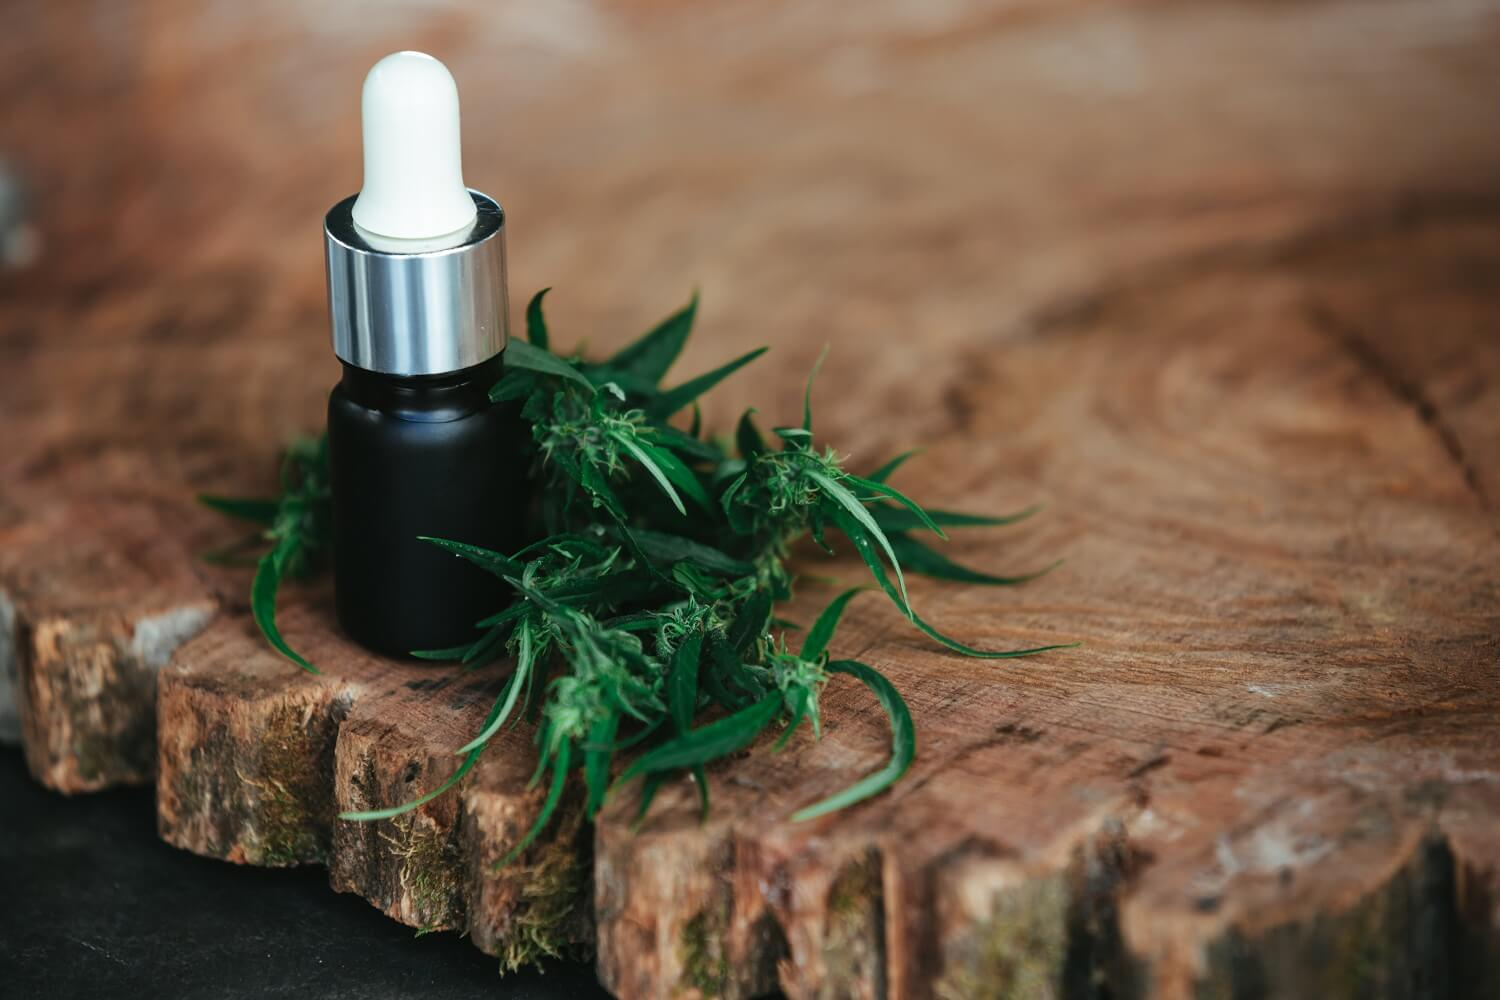 CBD Oil for Pain: But Is It Really Safe and Effective?